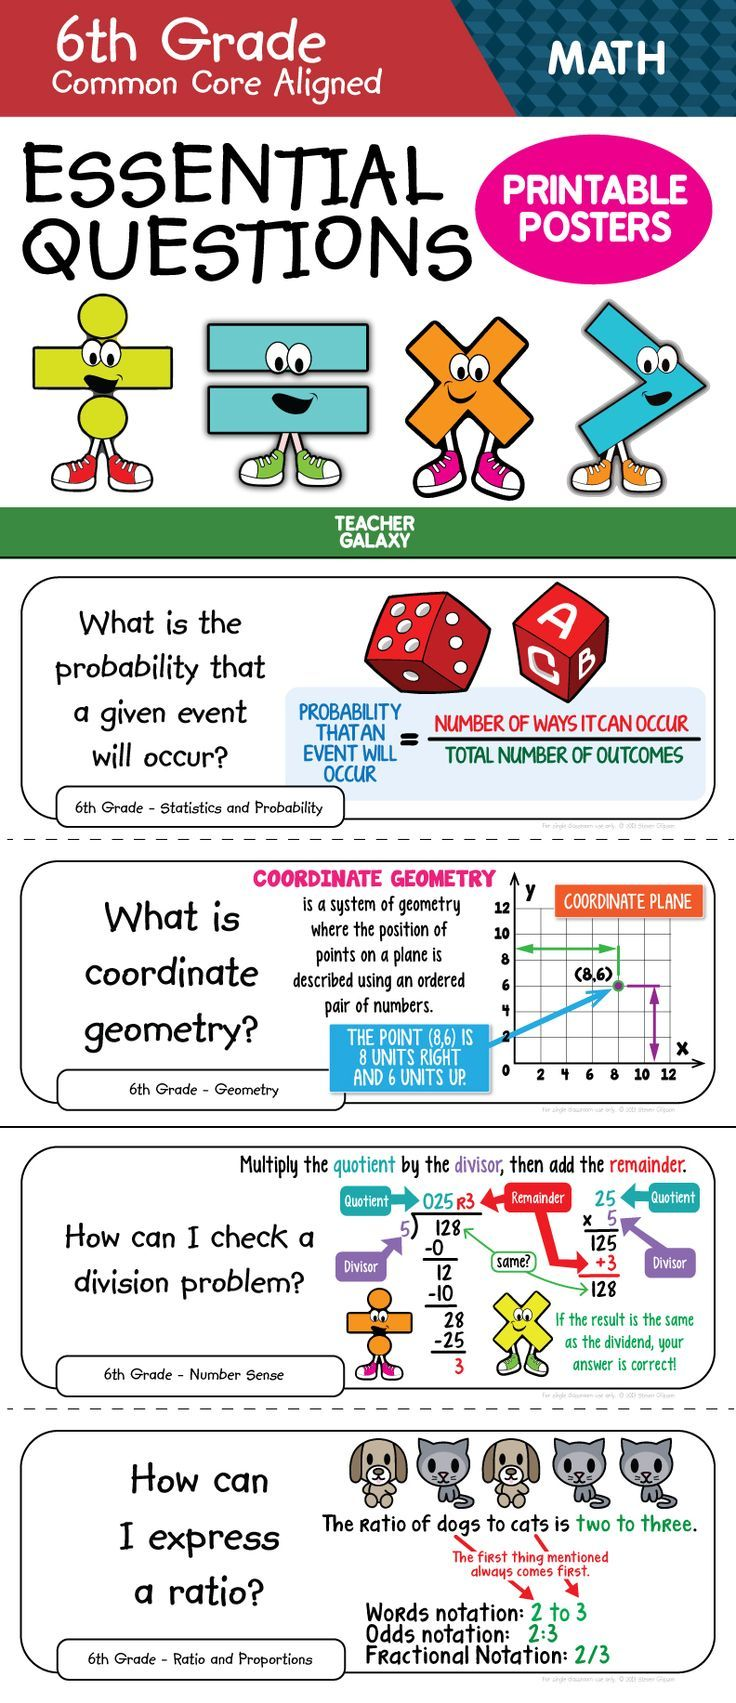 Essential Questions for 6th Grade Math | Pinterest | Common cores ...